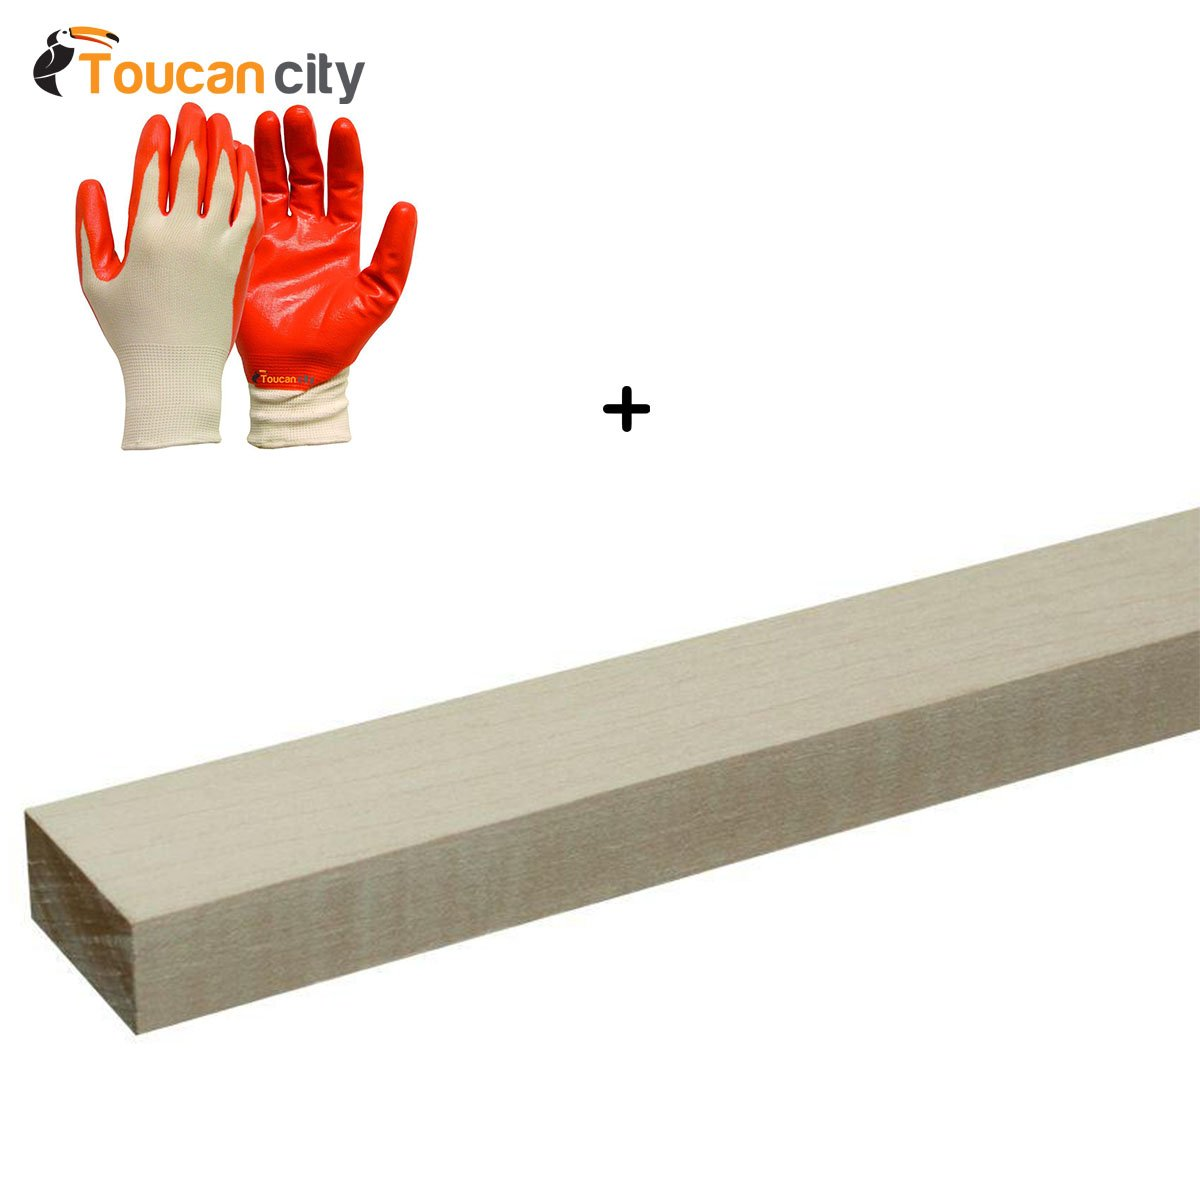 Toucan City Nitrile Dip Gloves(5-Pack) and Builders Choice 1 in. x 2 in. x 8 ft. S4S Maple Board (4 Piece/Bundle) HDSM1028XX